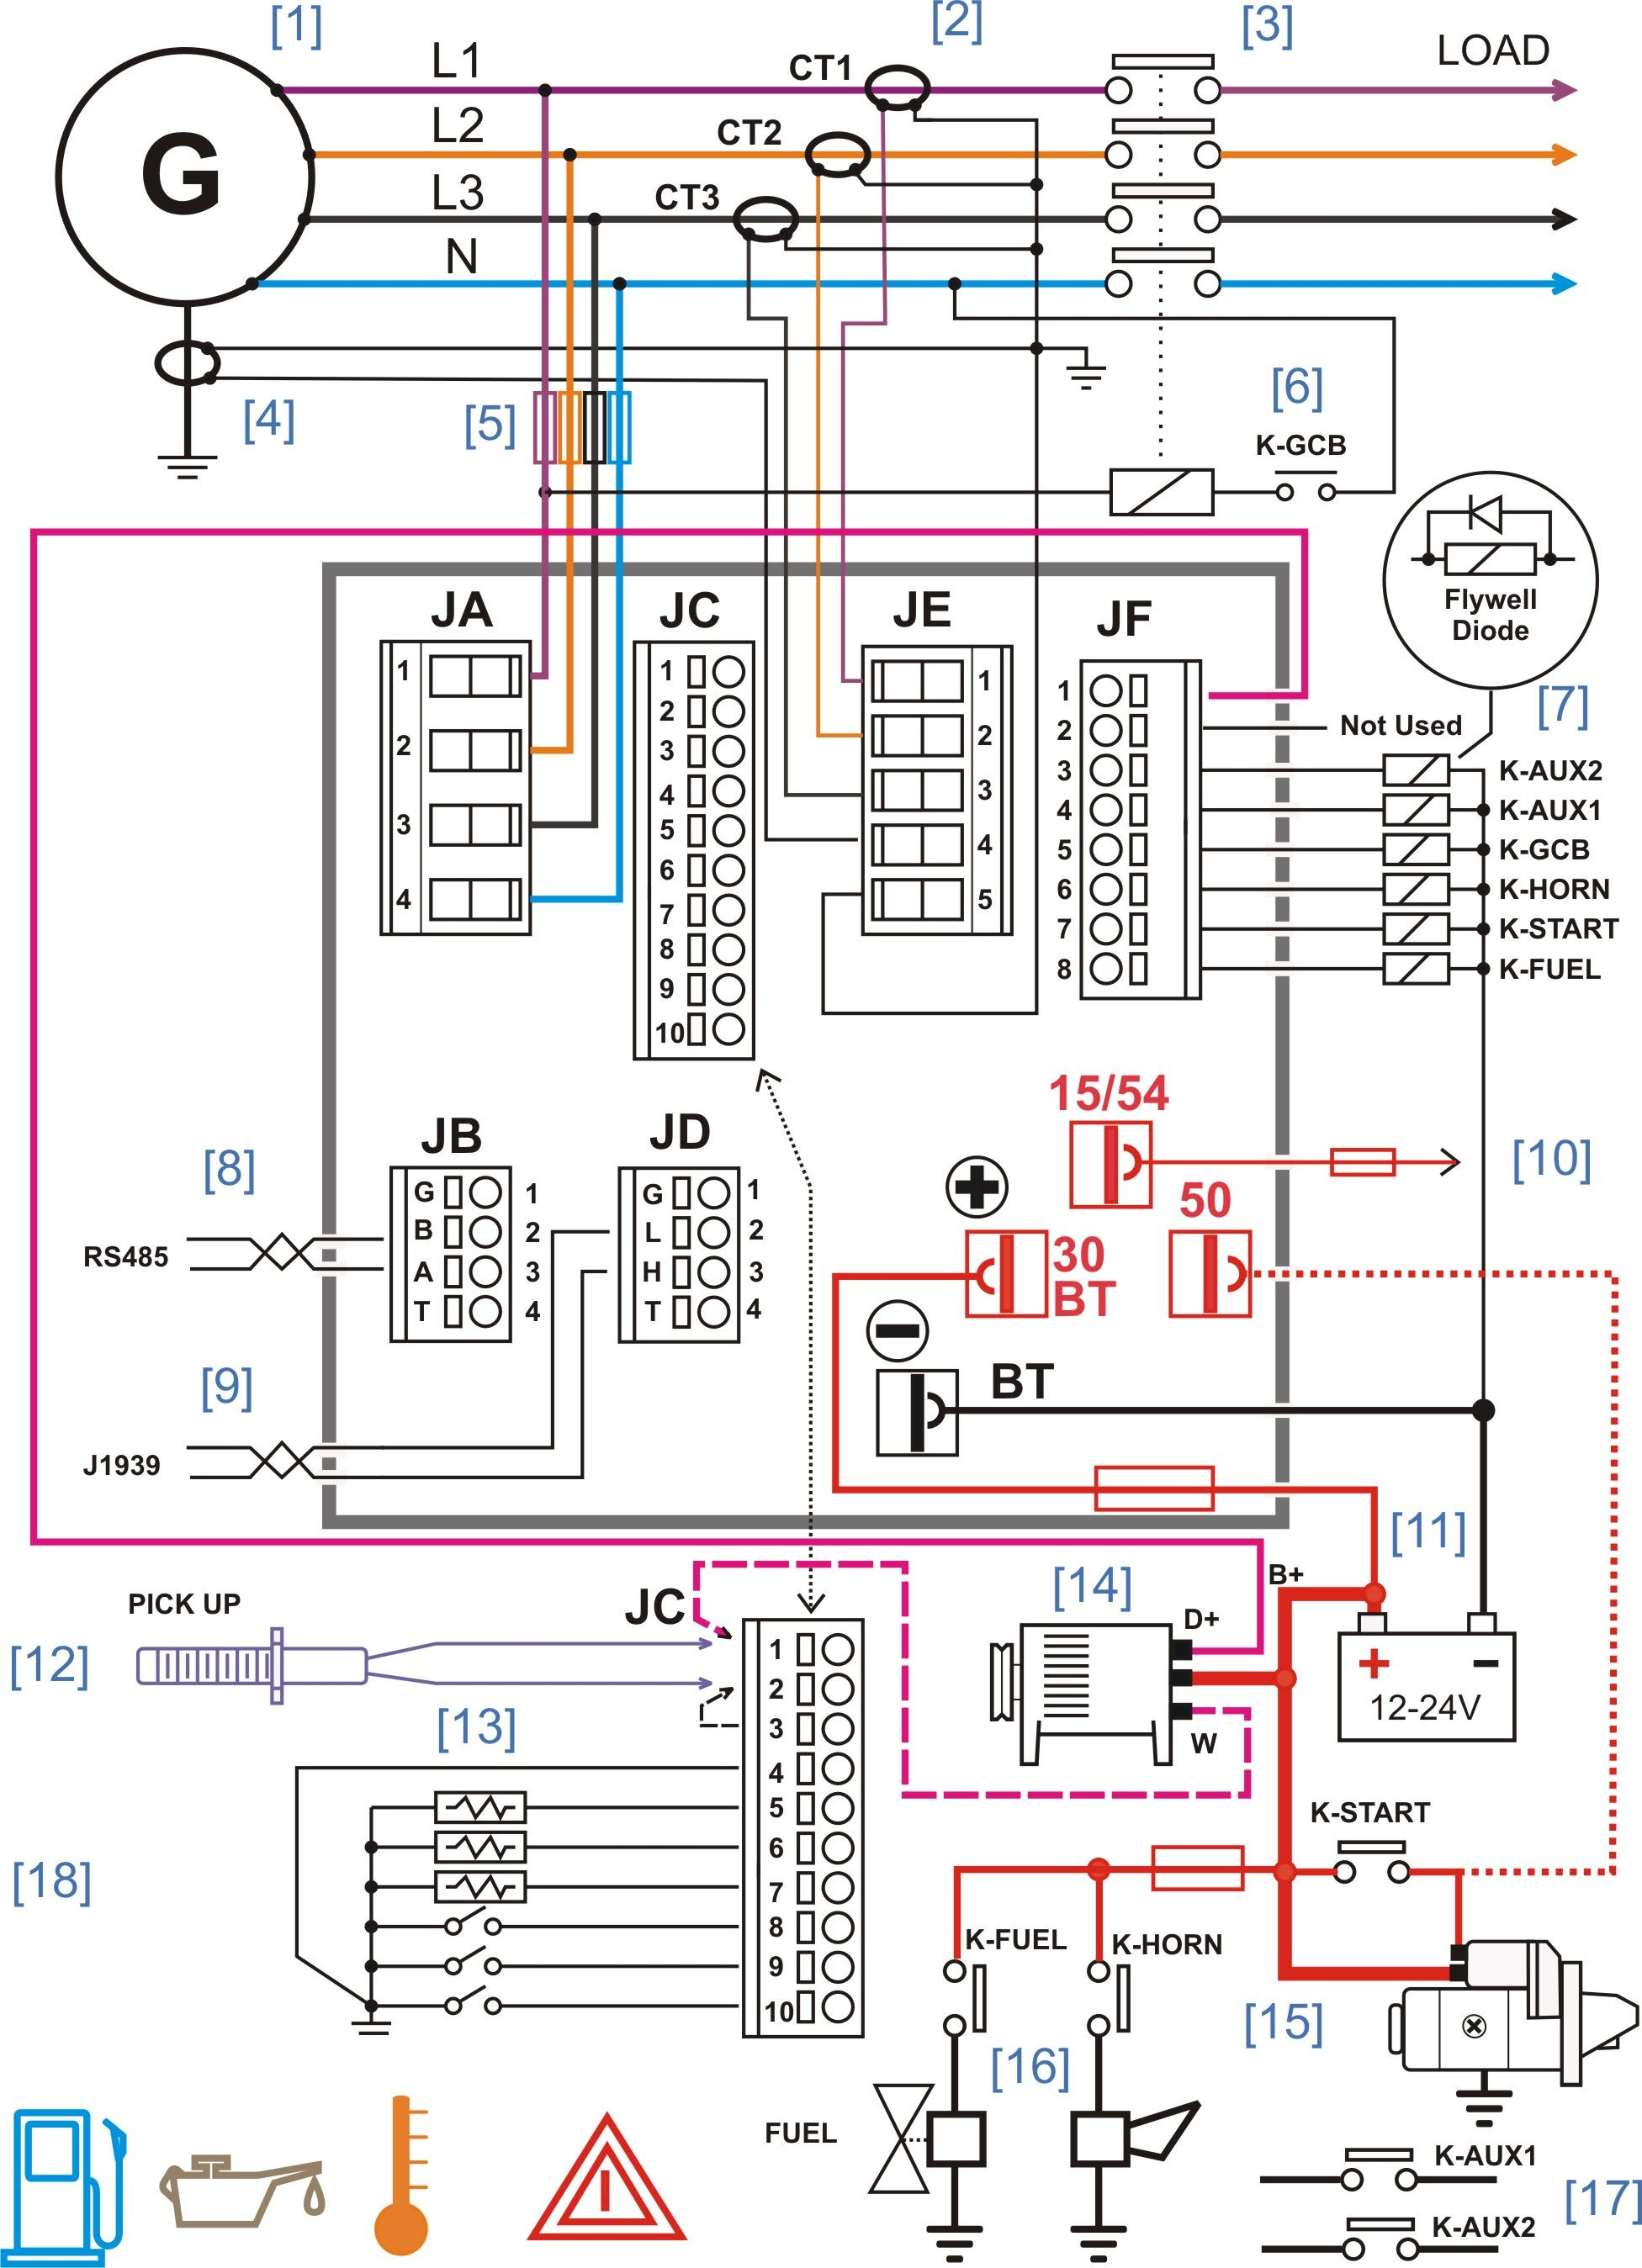 Cat Wiring Schematic Switch Symbols Electrical Starting Know About Ceiling Fan Light Furthermore Zing Ear Pull Chain Diesel Generator Control Panel Diagram Generators In Rh Pinterest Com